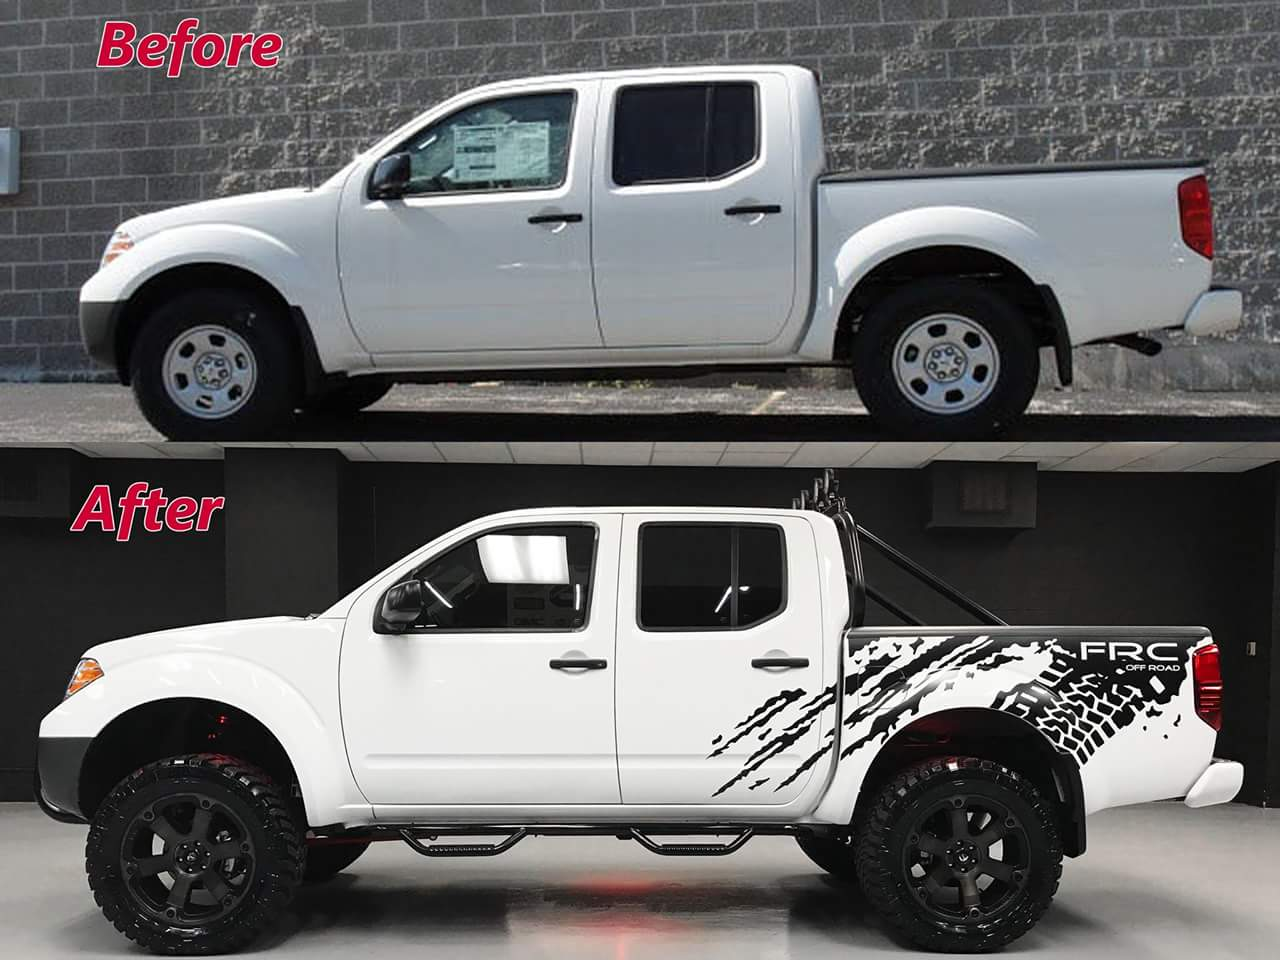 Before and After Picture of a Lifted Nissan Titan